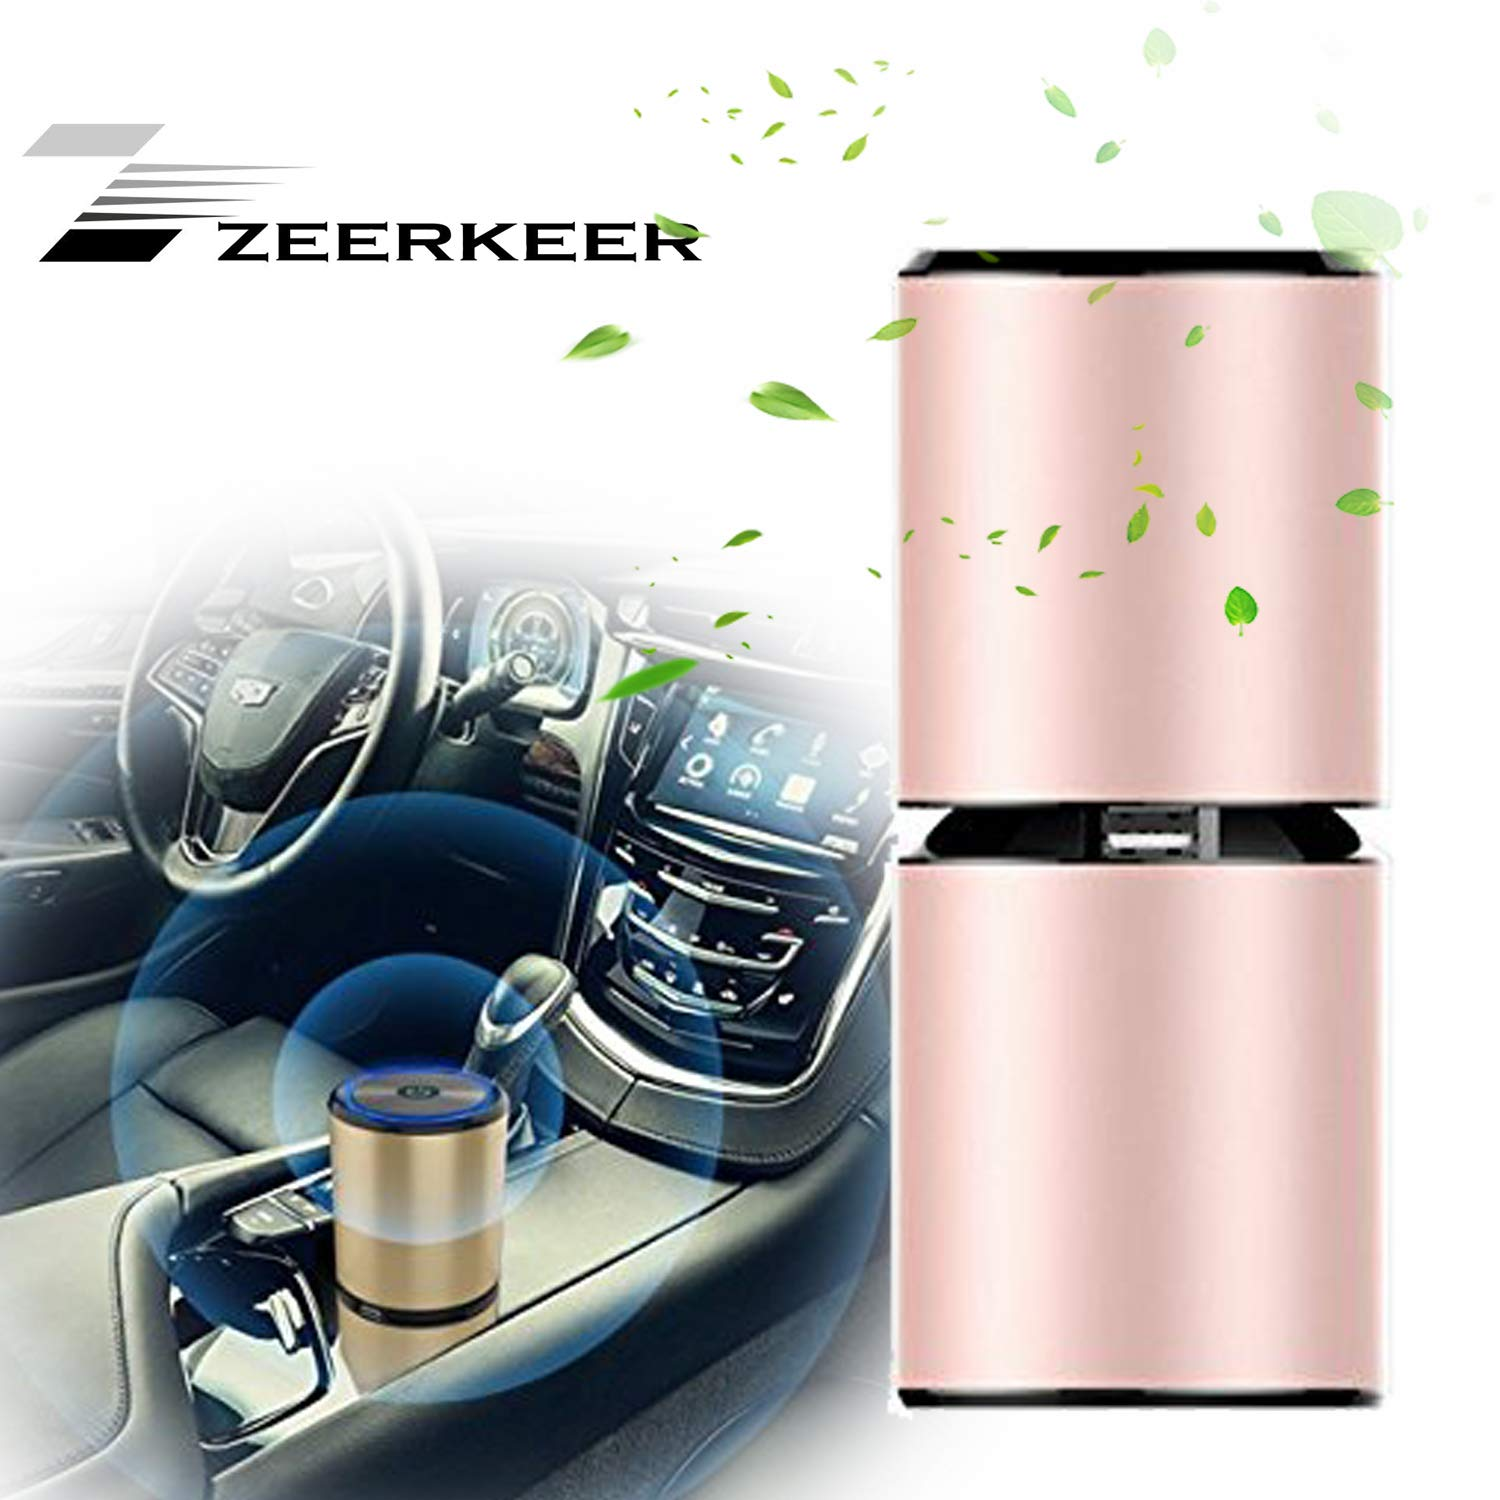 Car Air Purifier Ionizer, ZEERKEER Air Freshener and Odor Eliminator with Dual USB Charging Ports, Remove Cigarette Cigar Wildfire Smoke, Bad Odors, Pets Smells(rose)